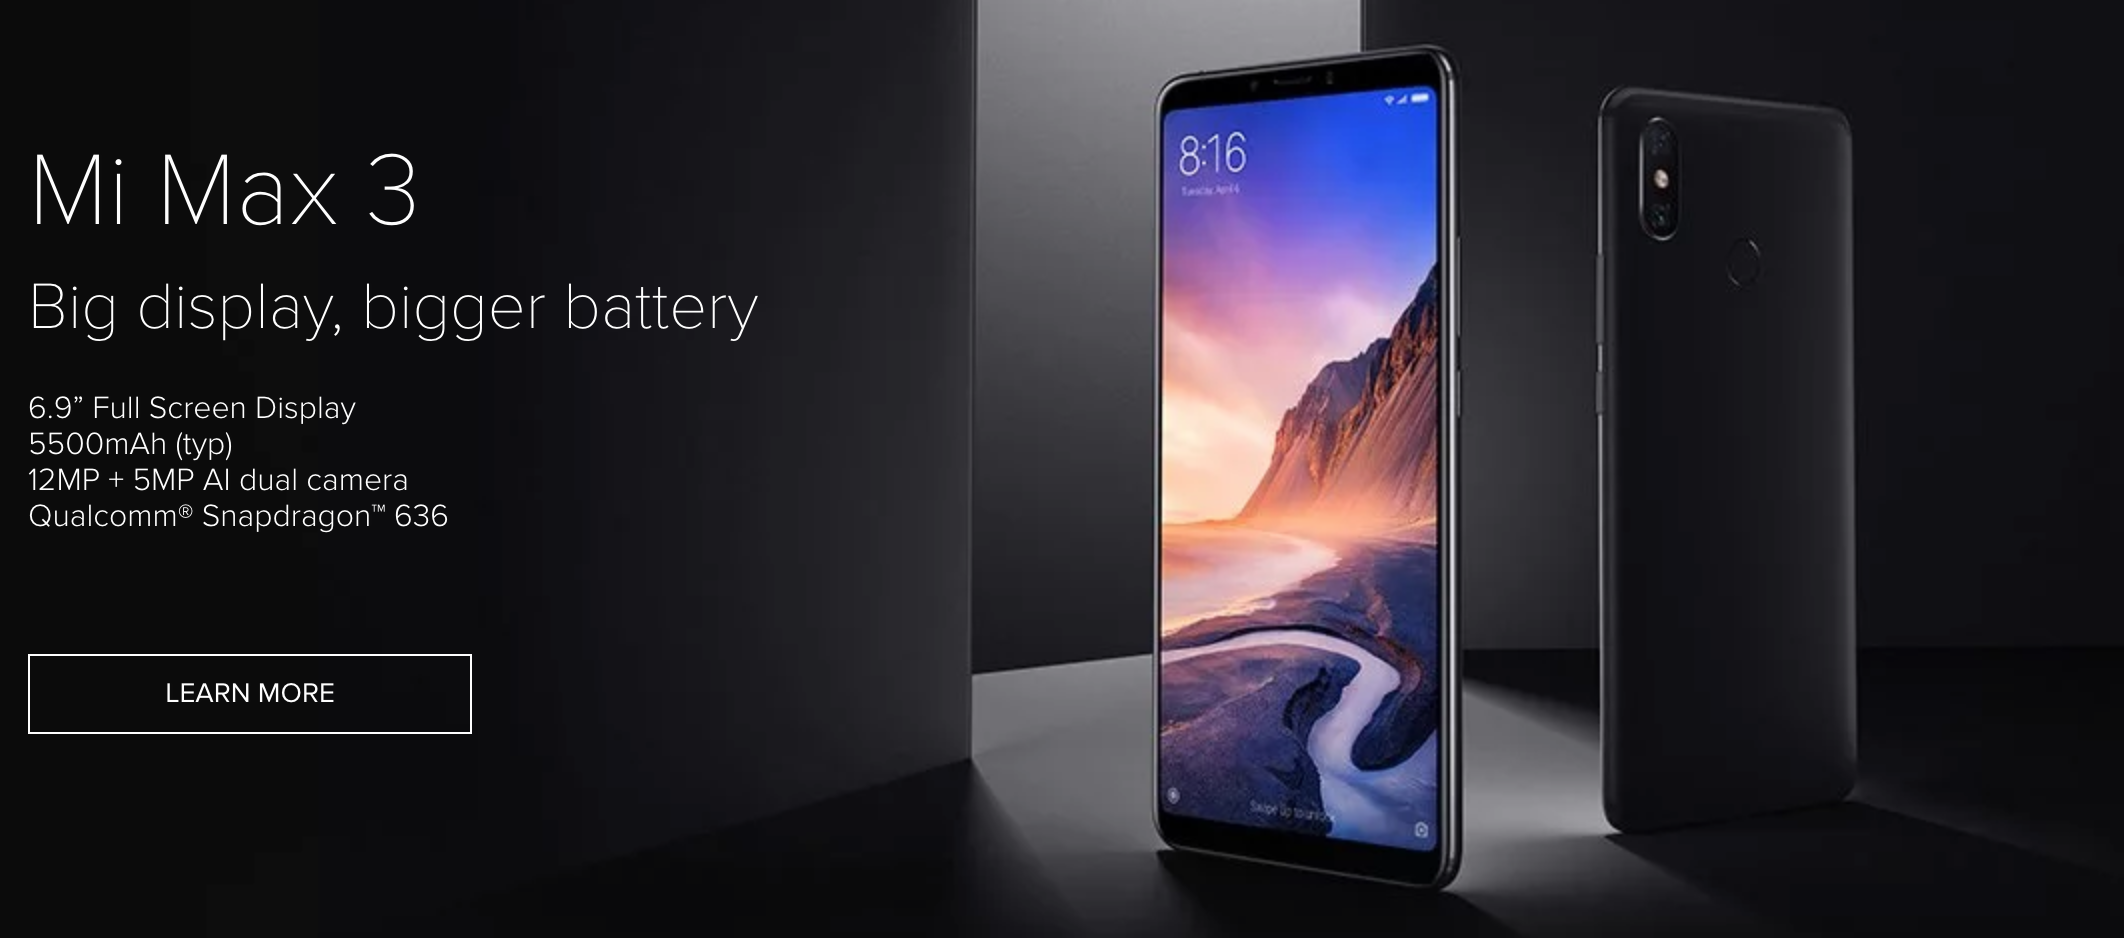 Xiaomi cellphone, similar in branding to Apple and Samsung, but with very different focuses!